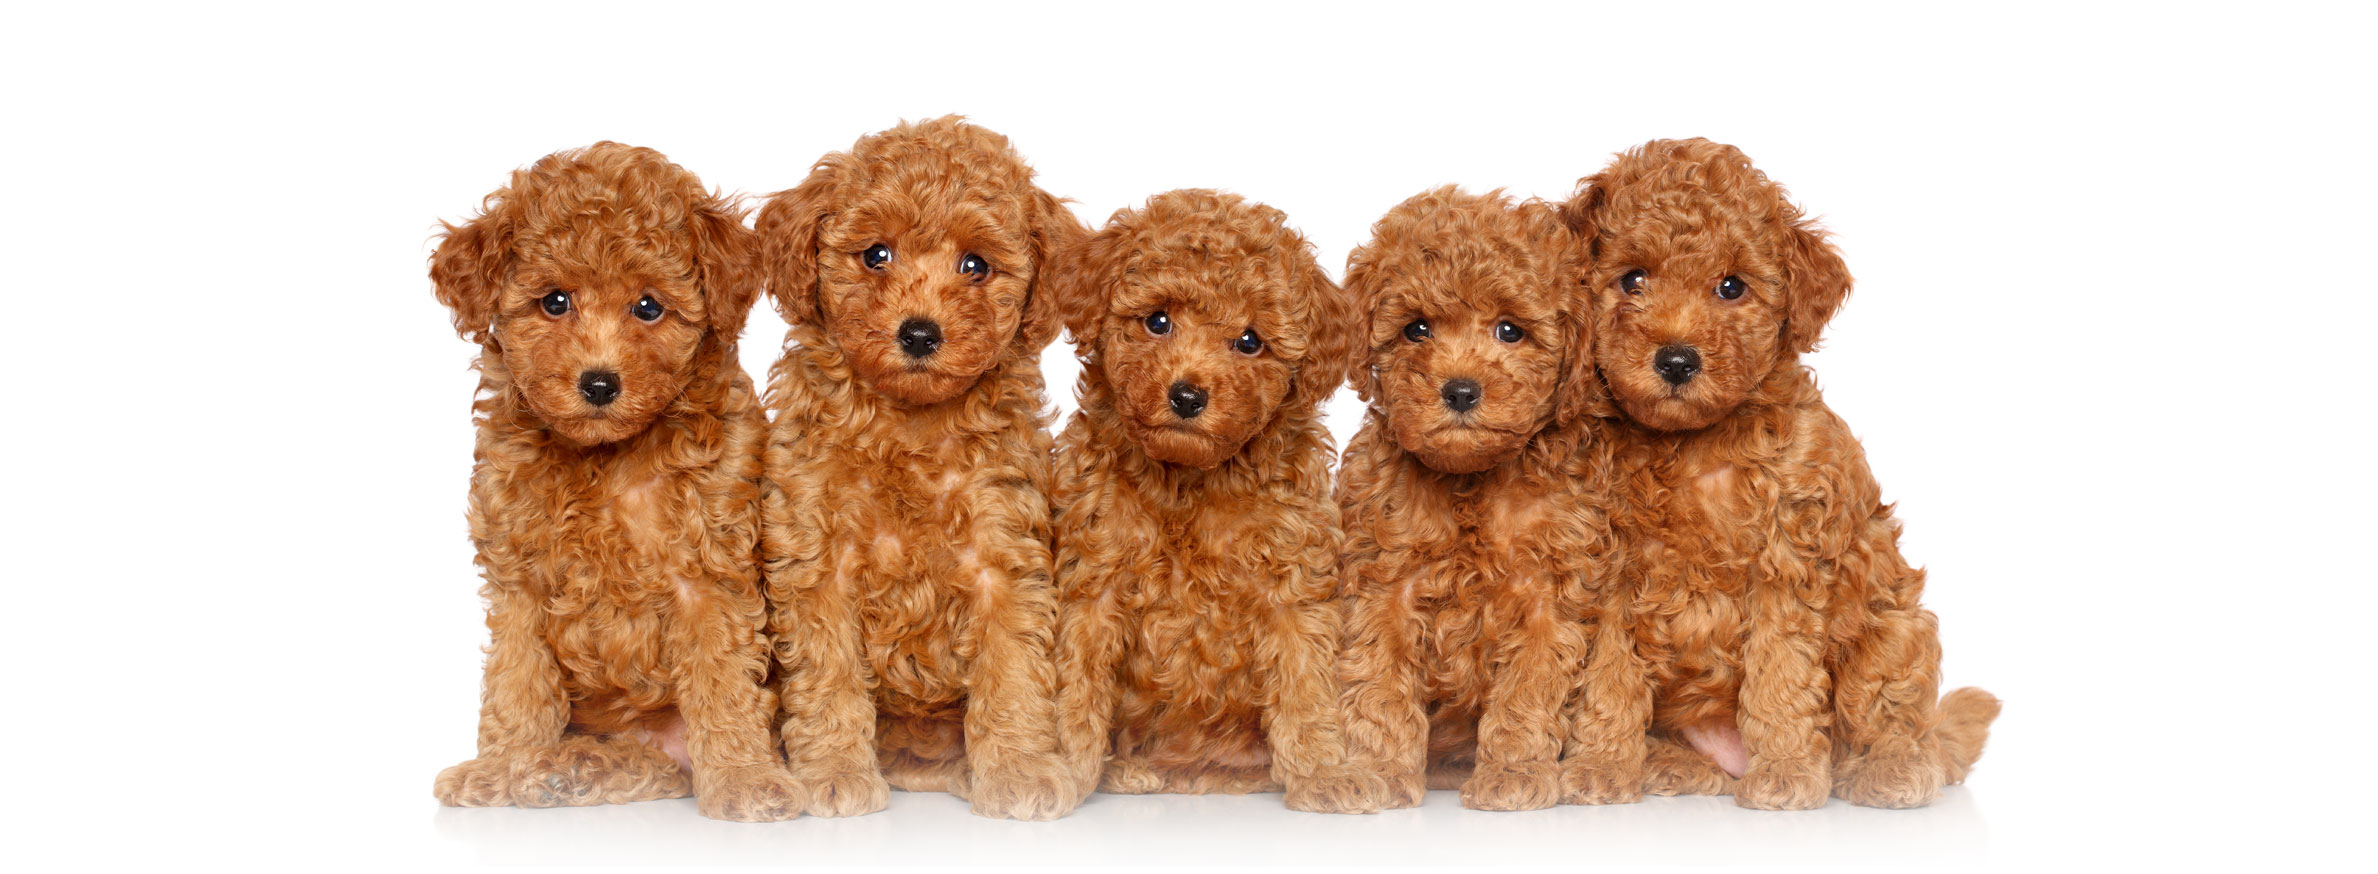 Poodle puppy finder